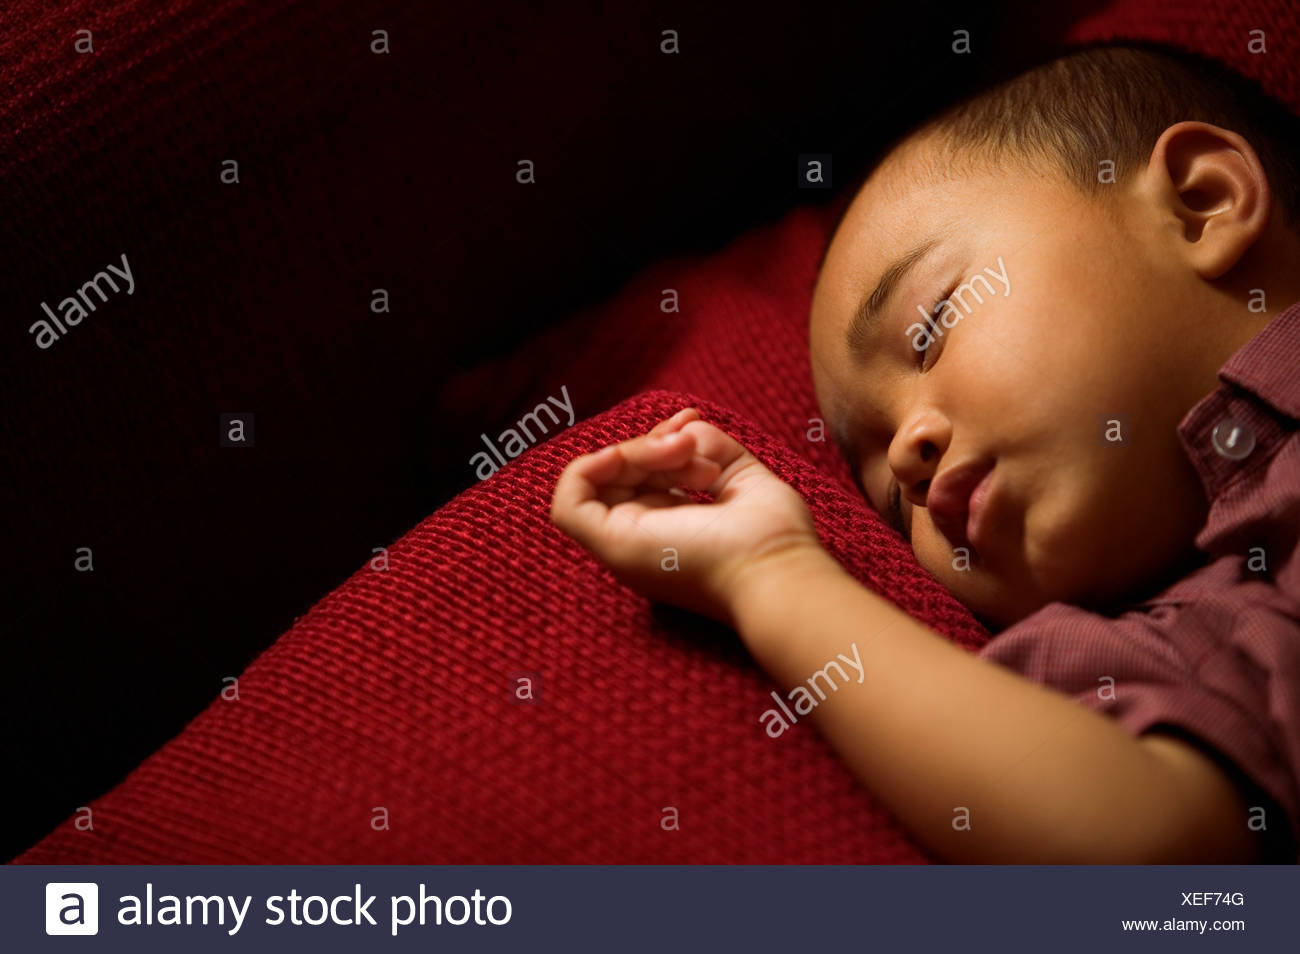 Asian toddler asleep on couch - Stock Image